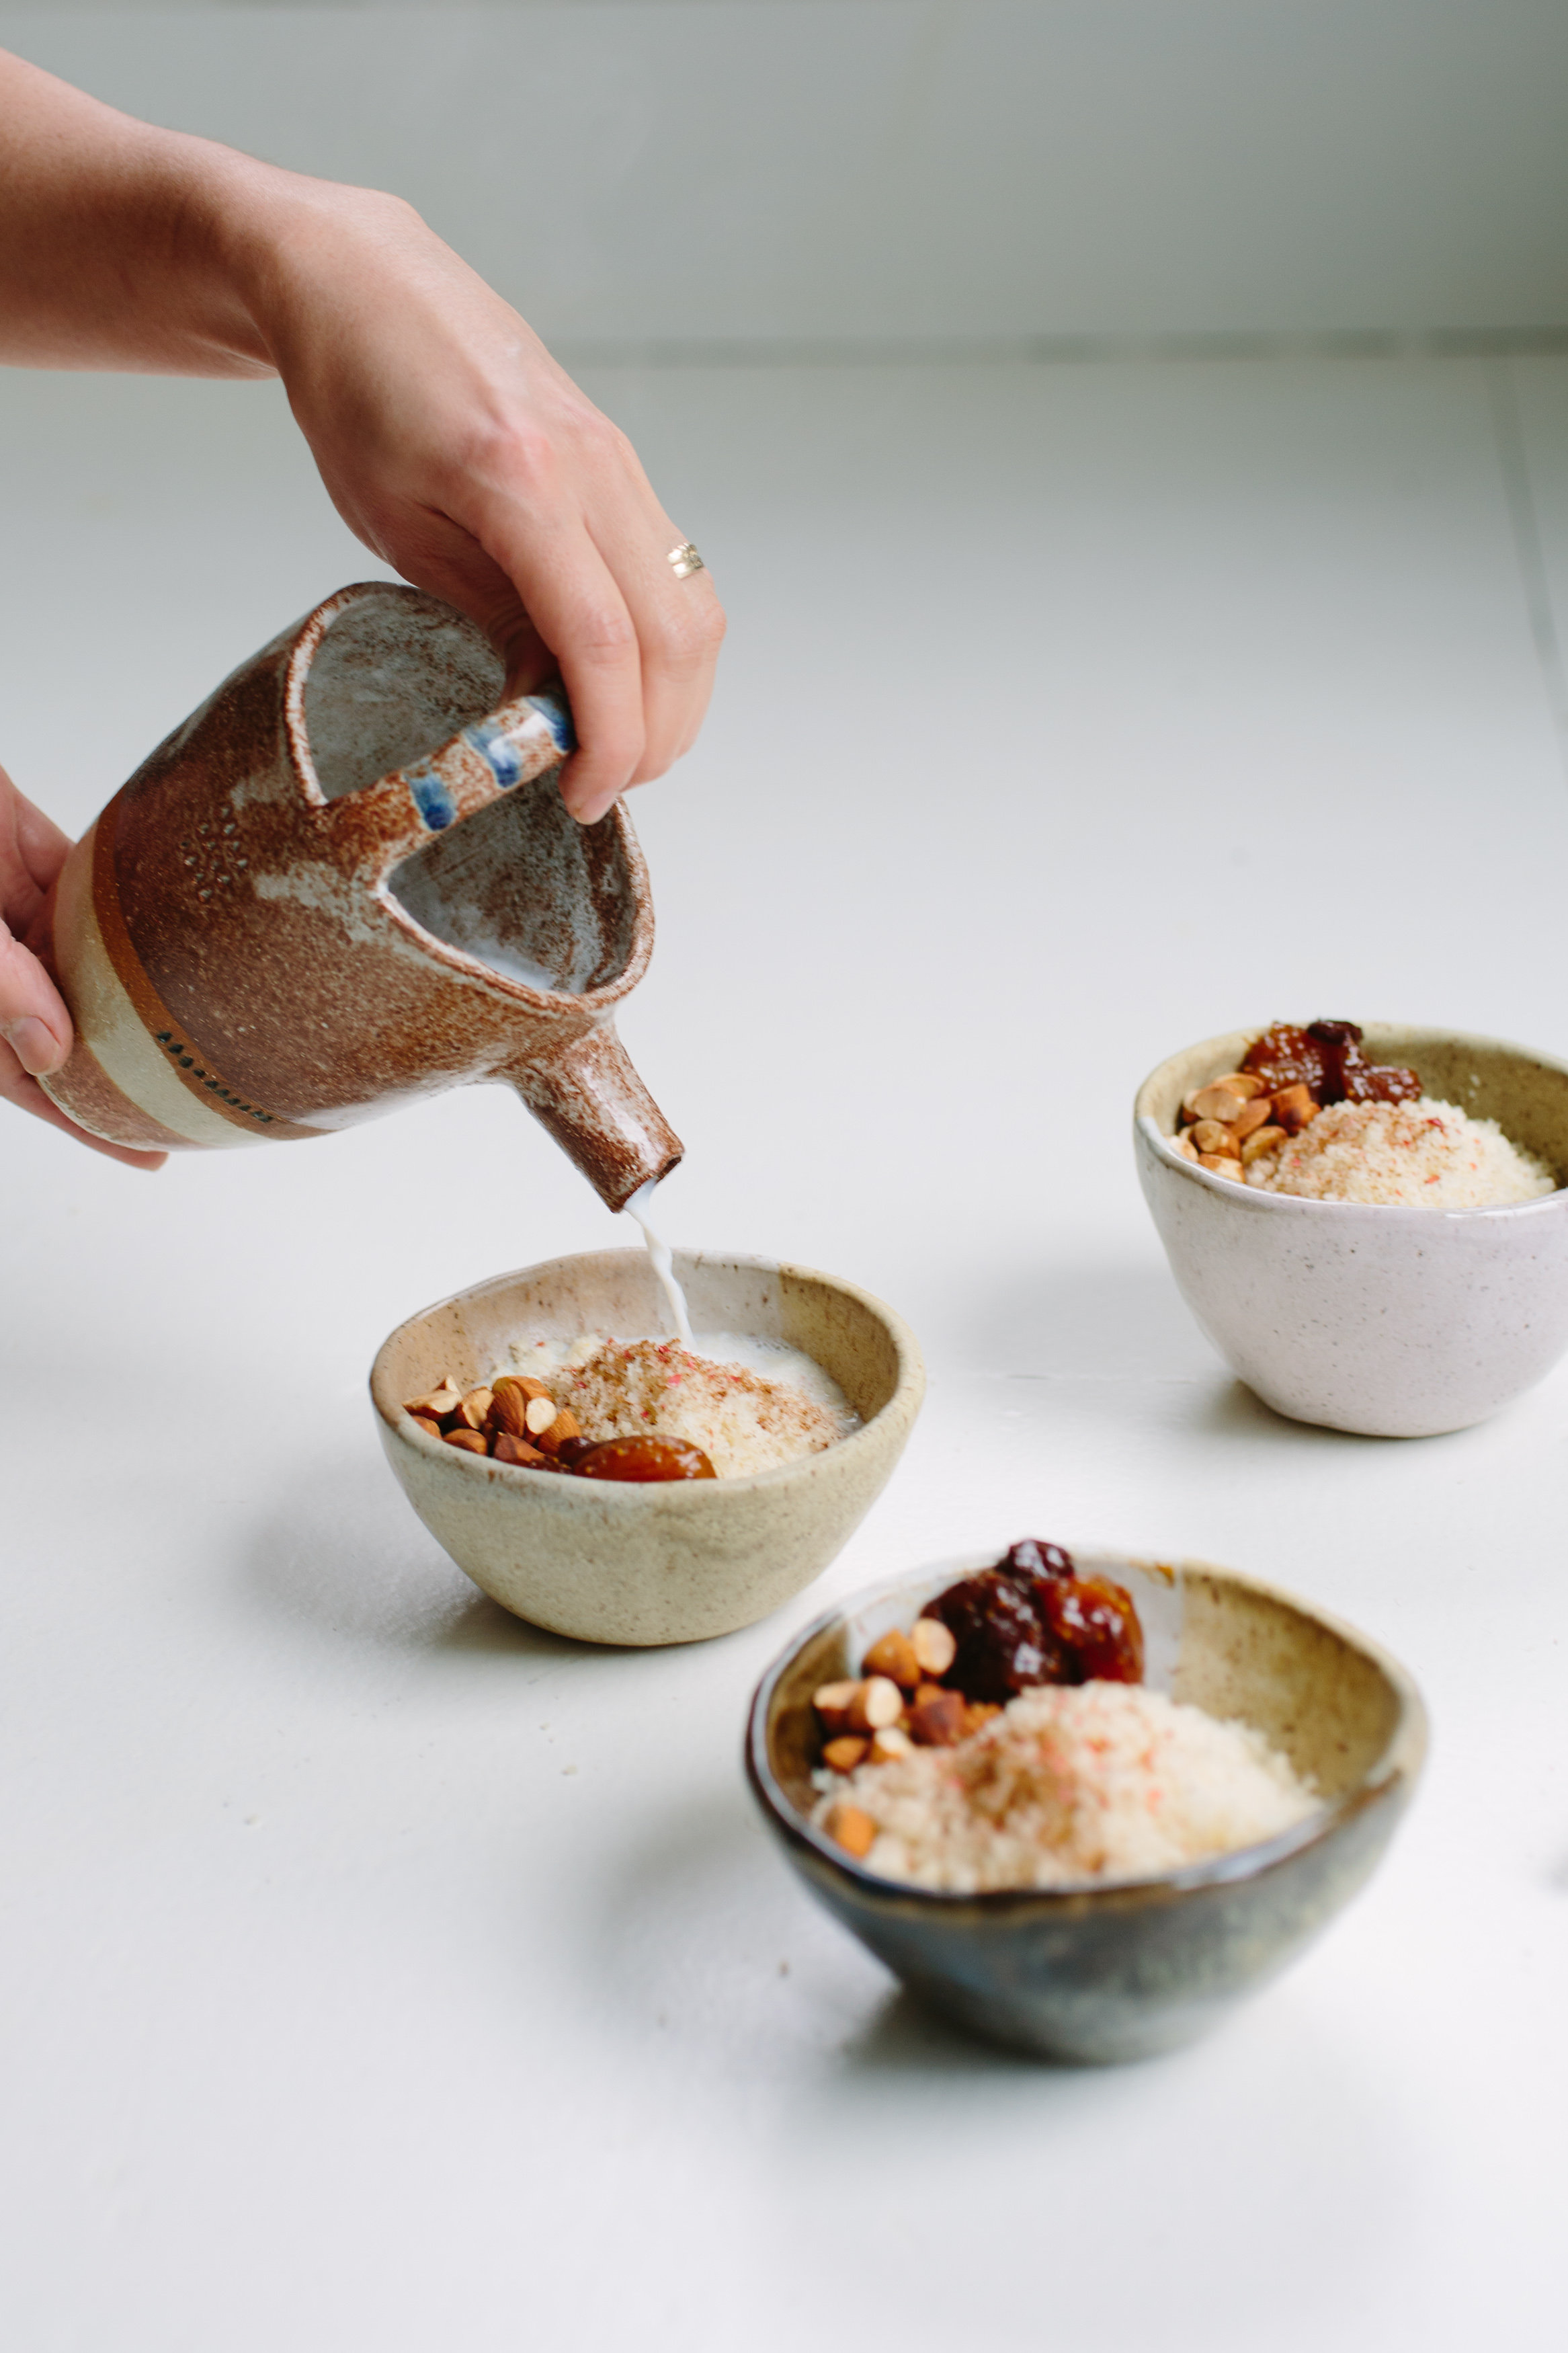 Couscous No. 1 Jajo served as a sweet morning dish with dried fruit preserve, roasted almonds, cinnamon and hot spices milk. Photography: Christine Han, Ceramics: Shino Takeda